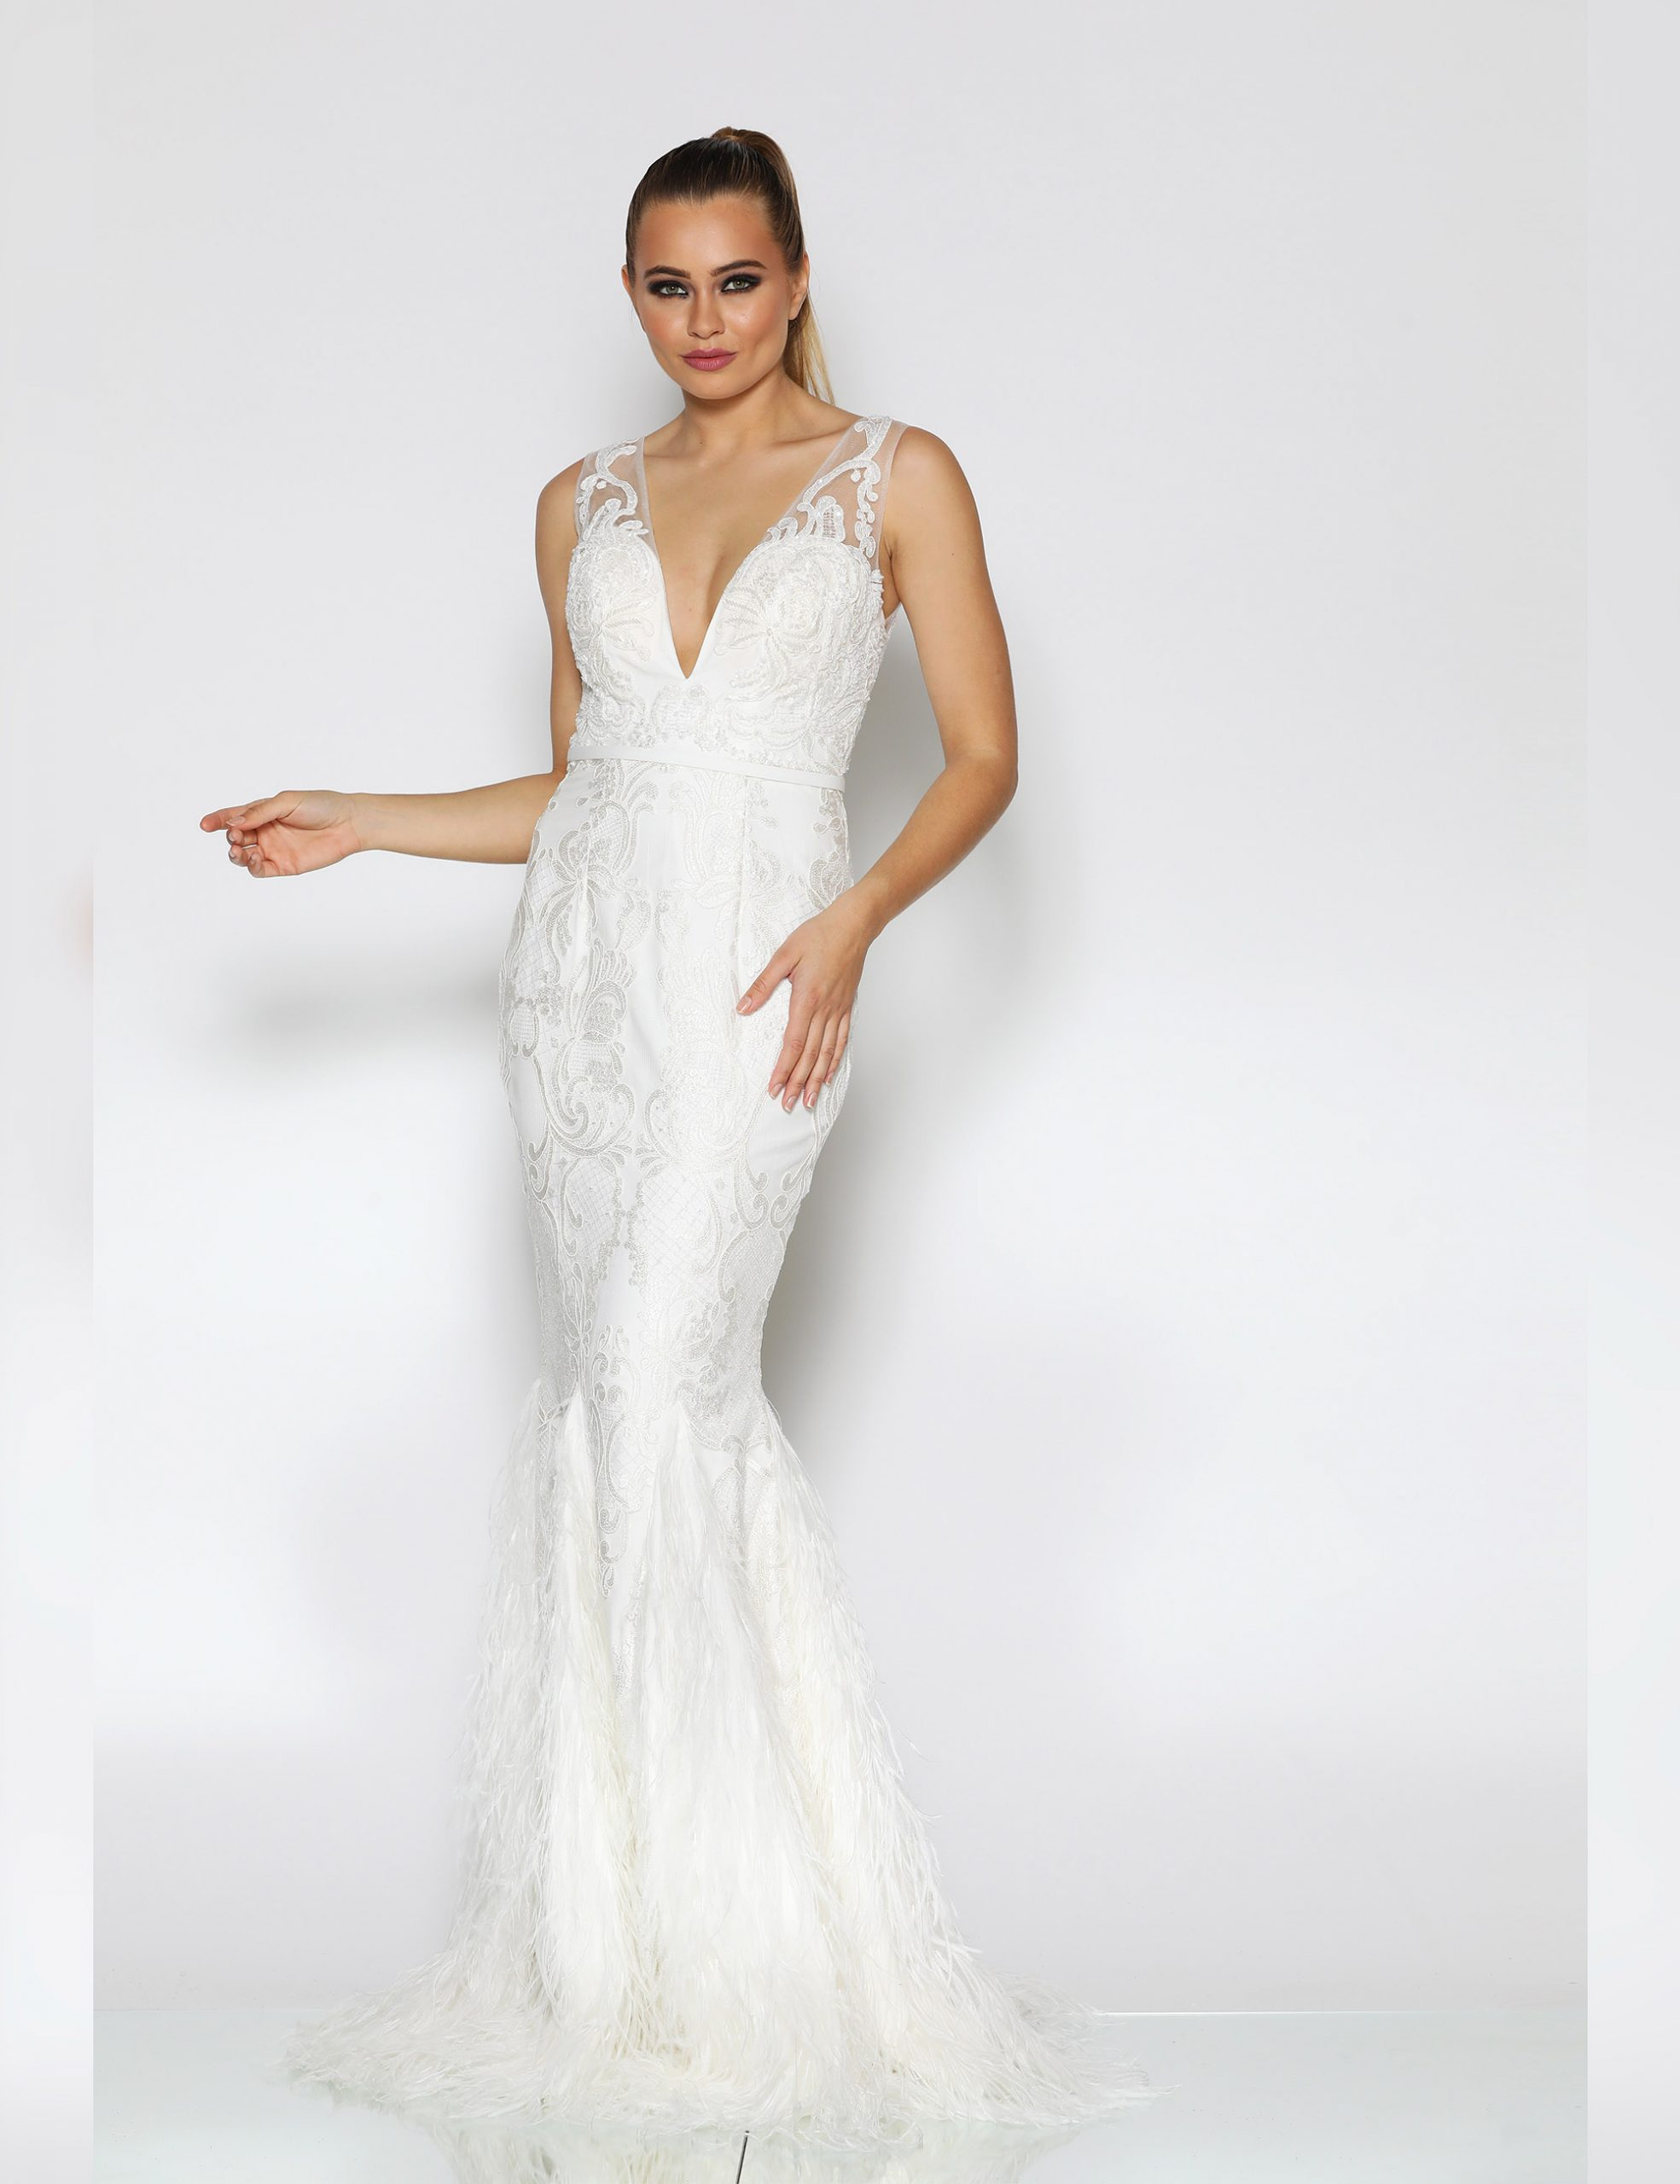 weddingdress23